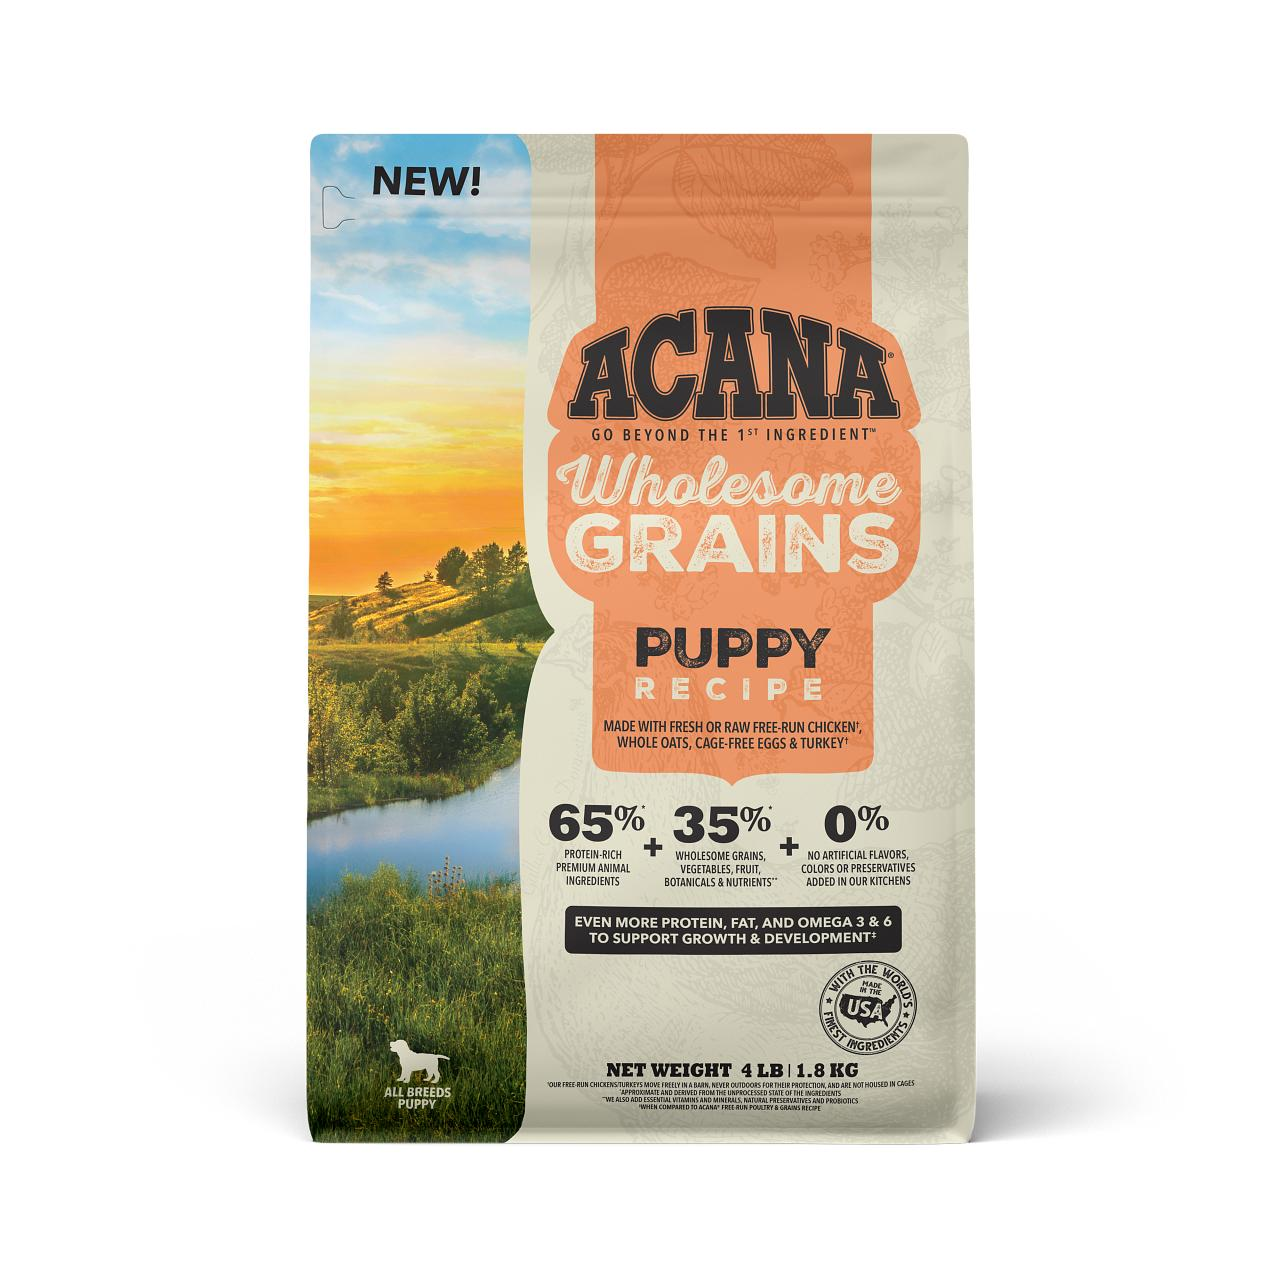 ACANA Wholesome Grains Puppy Recipe Dry Dog Food, 4-lb